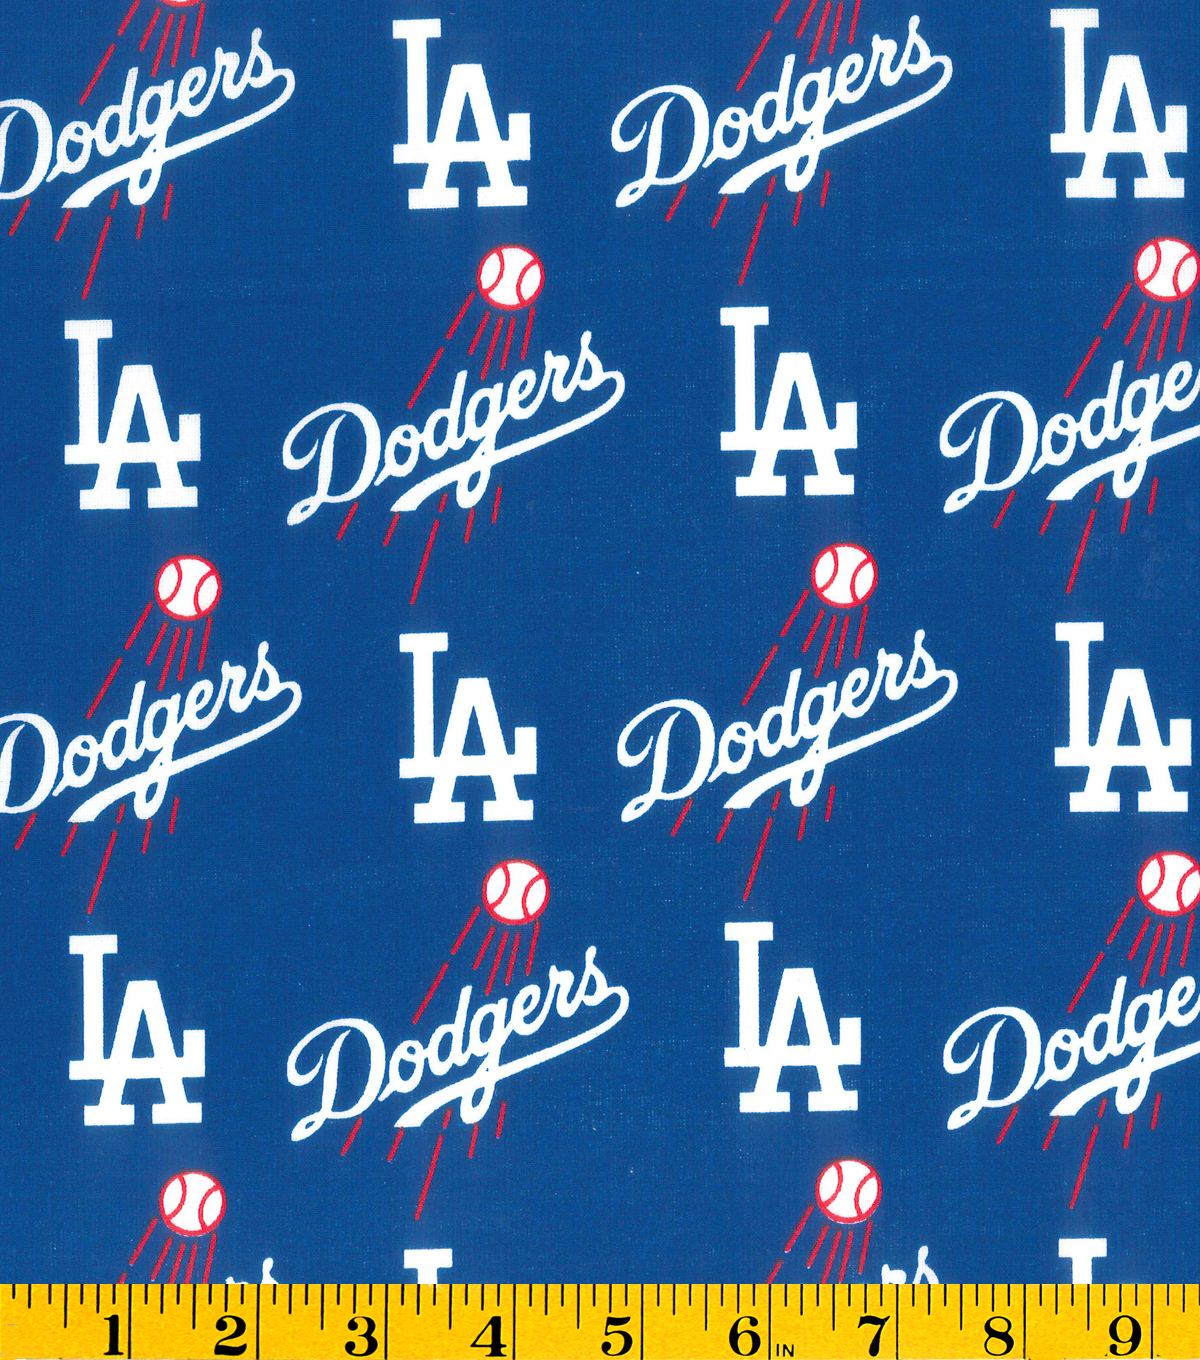 Los Angeles Dodgers Logo - Los Angeles Dodgers Cotton Fabric 58